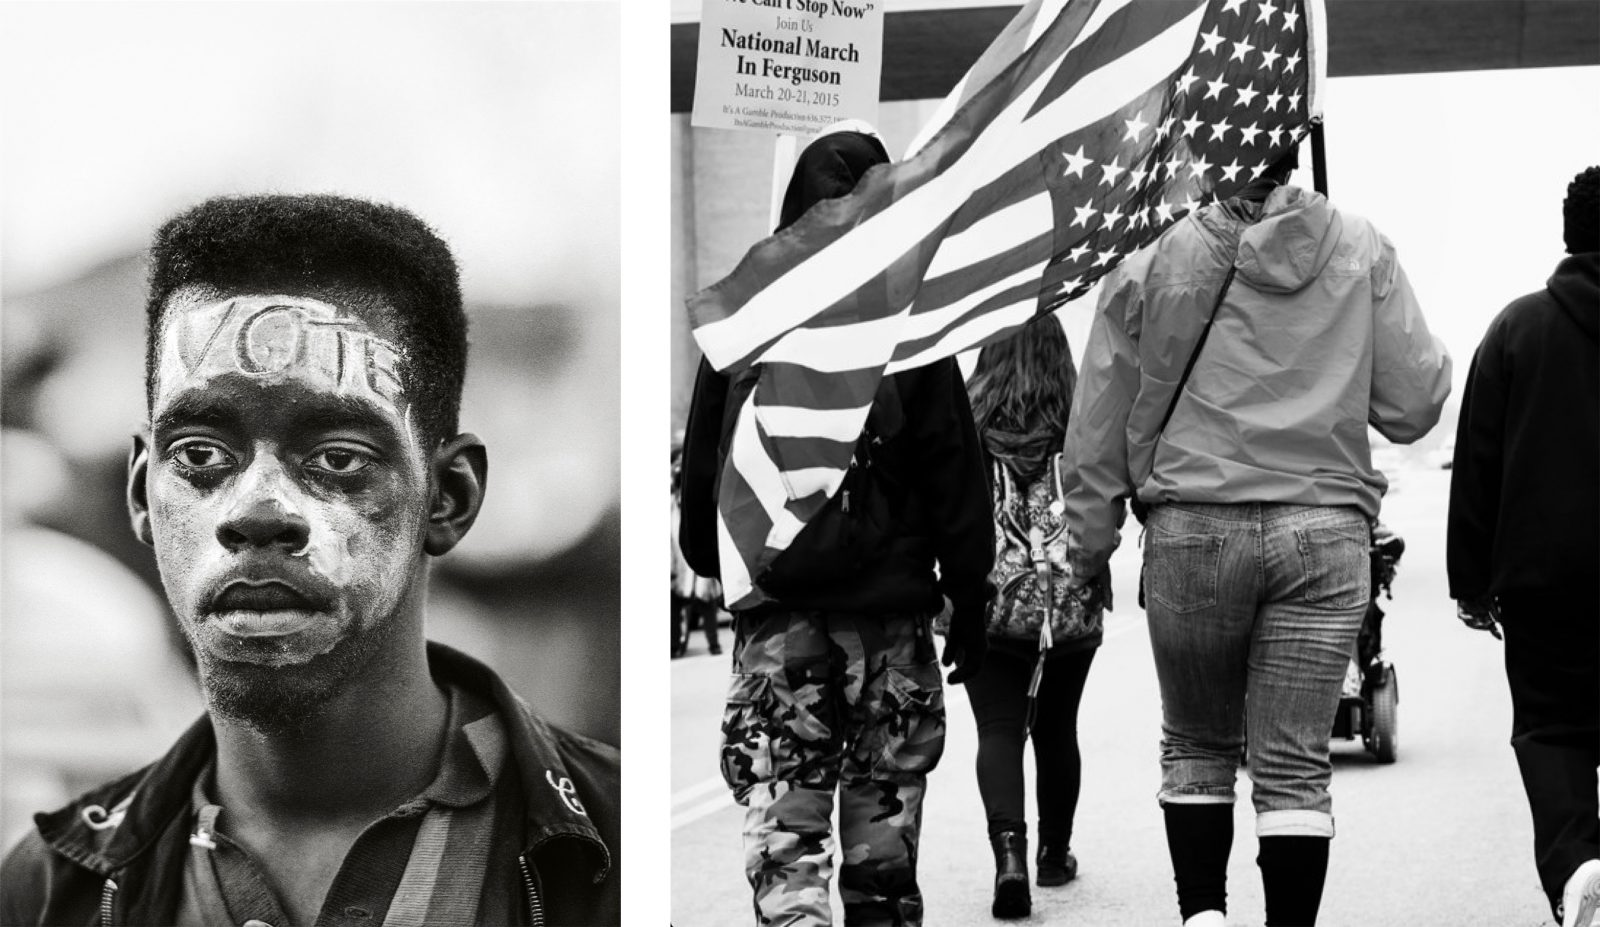 Steve Schapiro, VOTE, Selma, 1965 Sheila Pree Bright, #1960Now (National March on Ferguson, 'We Can't Stop Now,' Protesting Police Violence and the Murder of Mike Brown), 2015